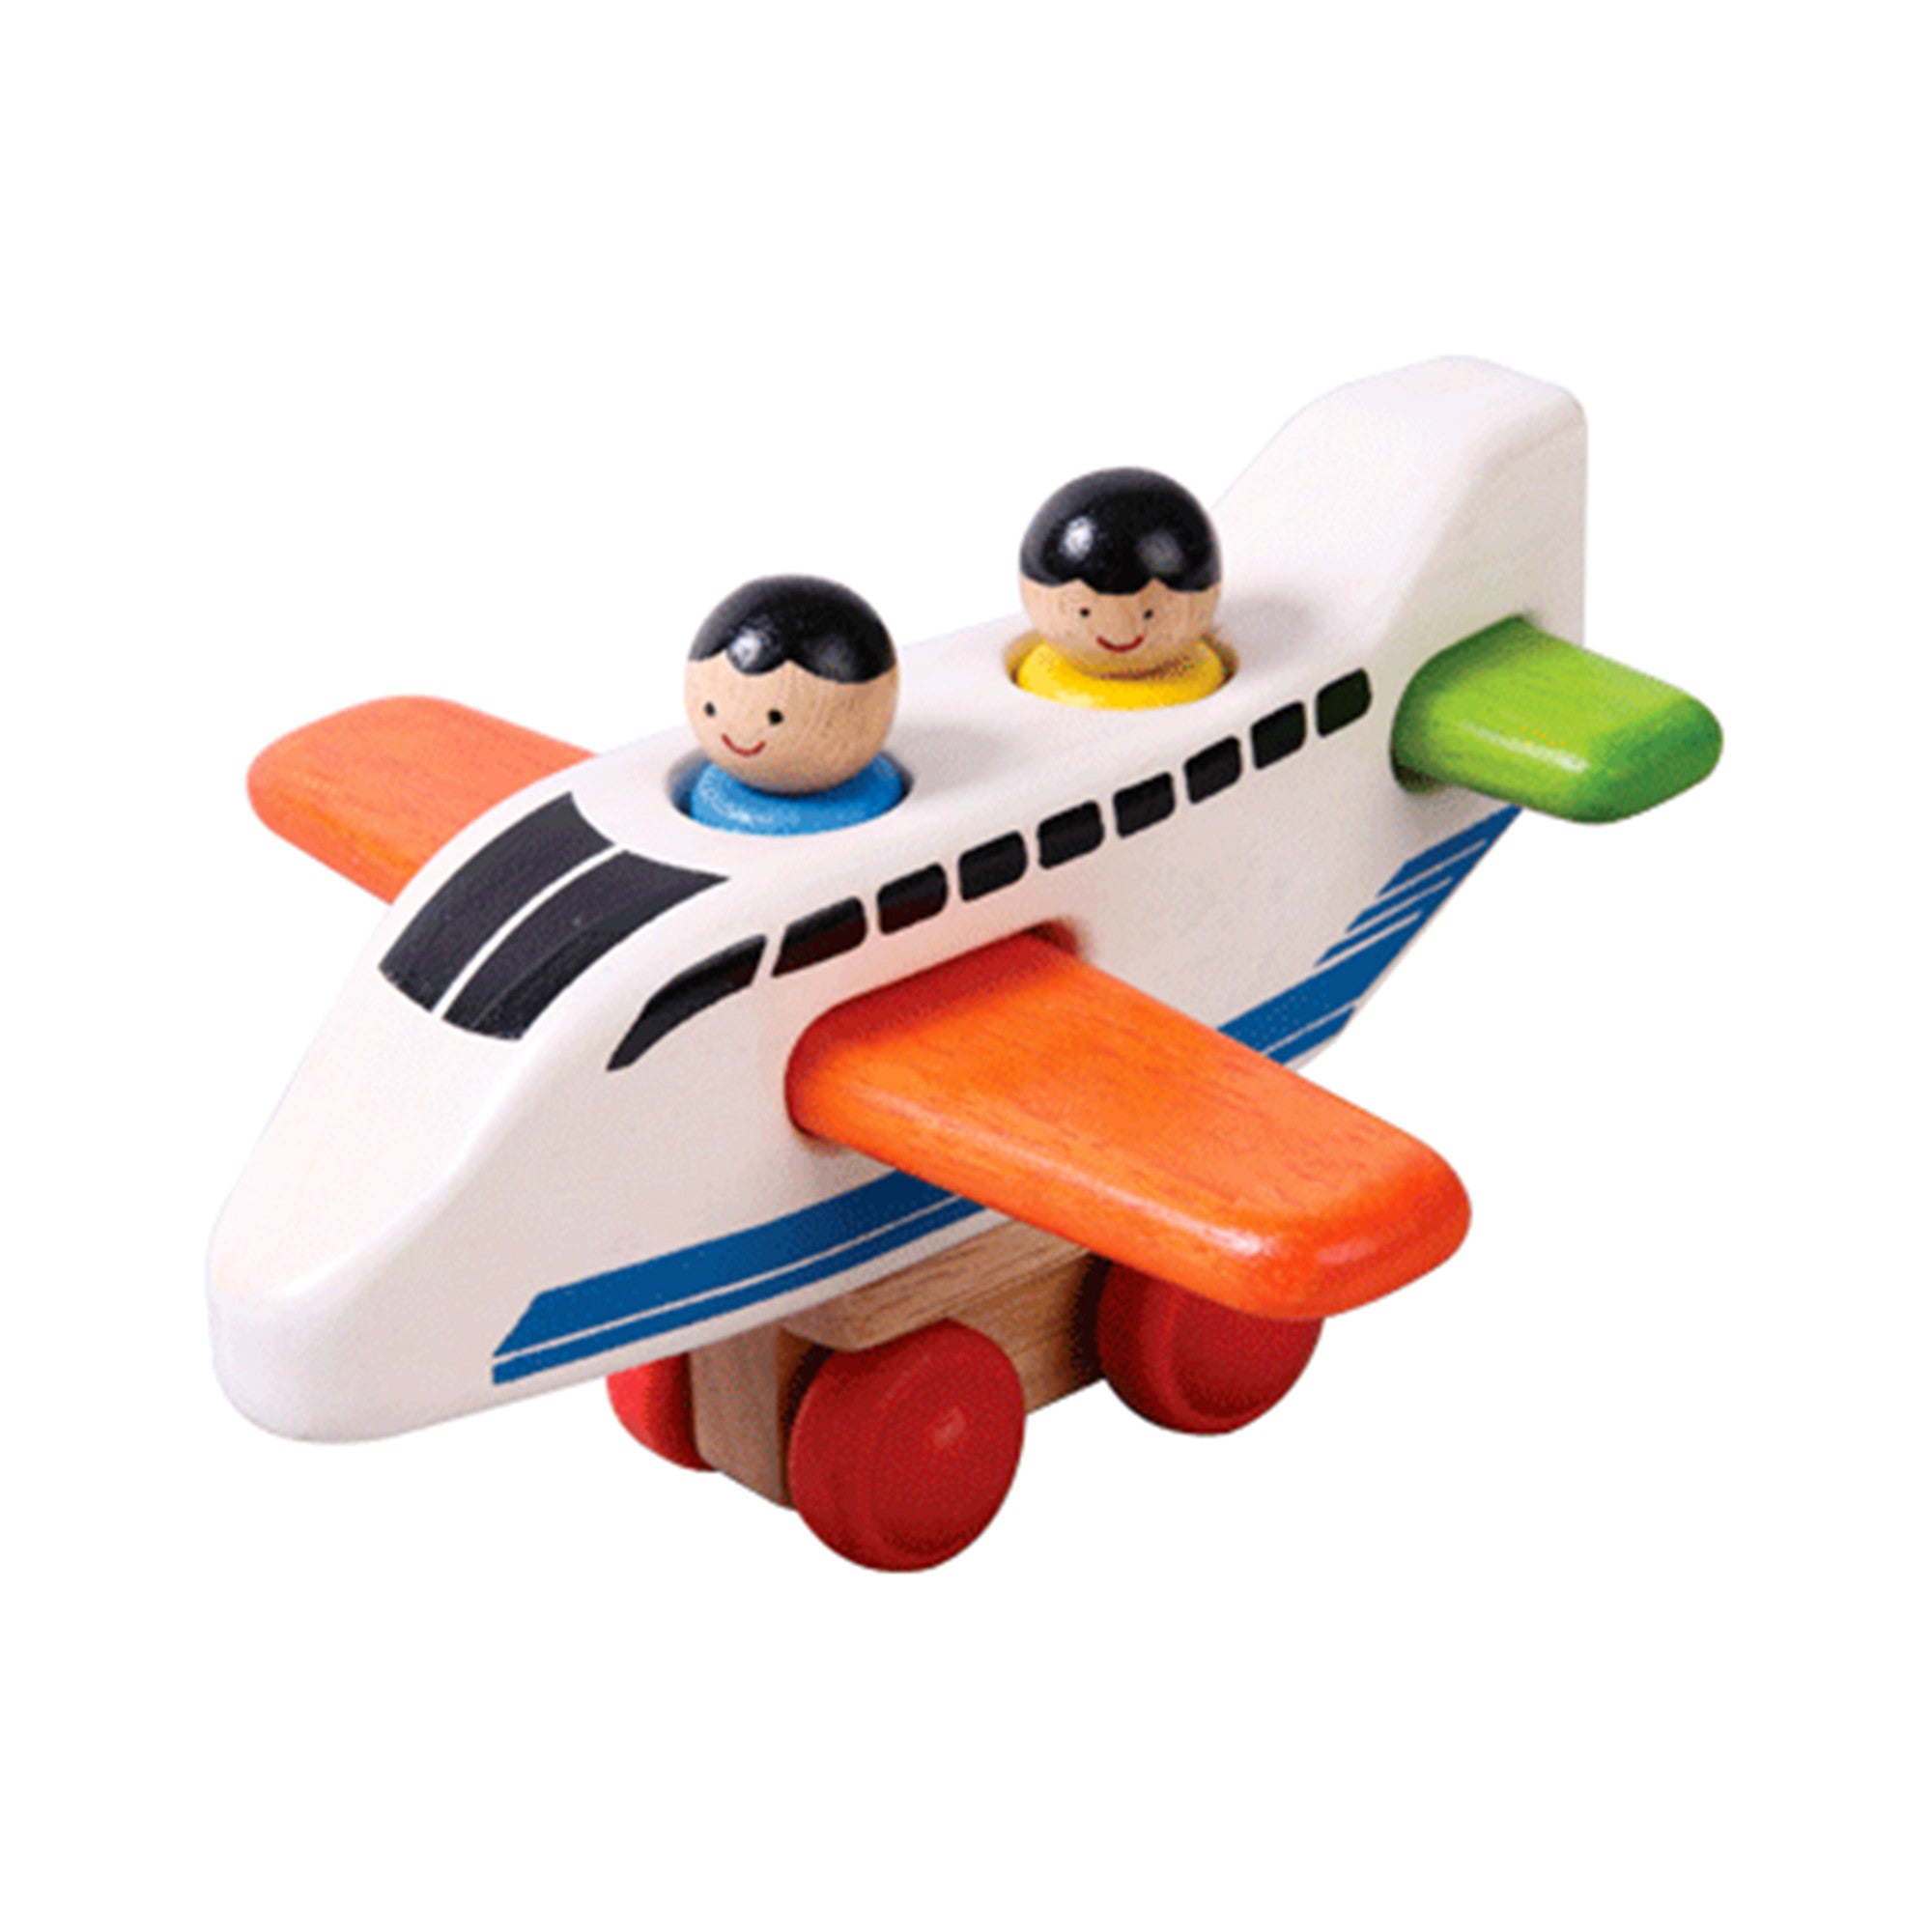 Wooden Plane Vertical Jigsaw Toy Voila Puzzles at Little Earth Nest Eco Shop